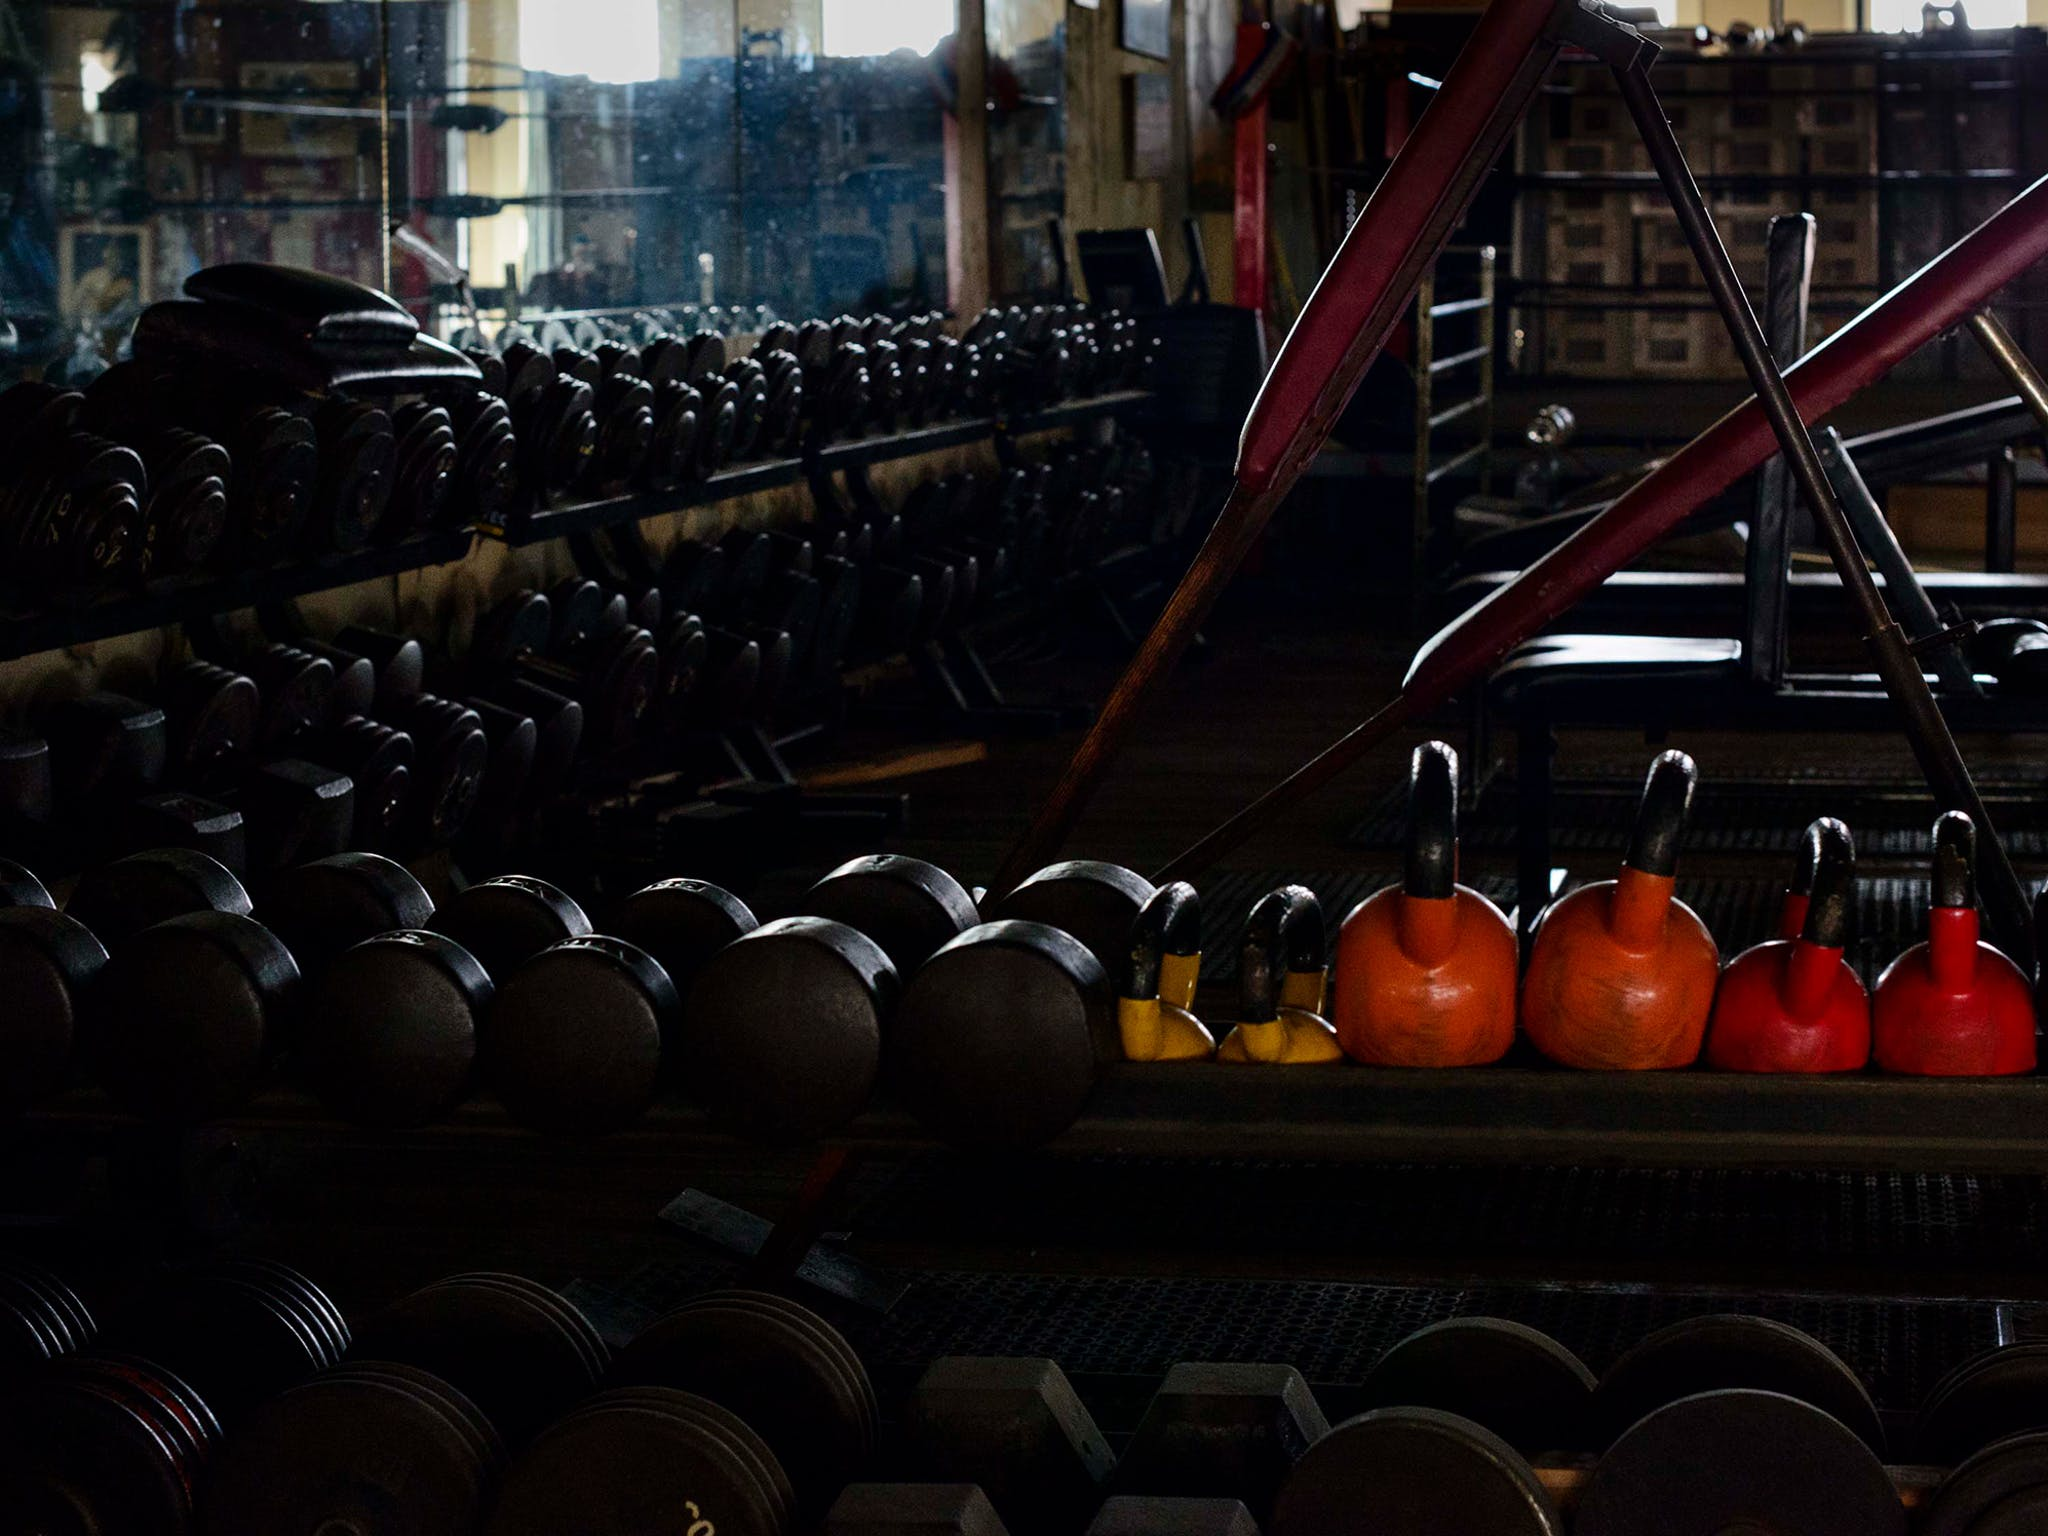 Compared to today's bright, spare, high-tech gyms christened with Internet start-ups names like Telos and Paradigm, Doug's was positively medieval: Nothing white, nothing plastic; all leather, wood, and aged metal. This picture of a small sea of dumbbells hints at just how much weight was on the floor—12,000 to 15,000 pounds, by Eidd's estimate. The light on those candy-colored kettlebells hits like a neon motel sign on a dark, lonely road.